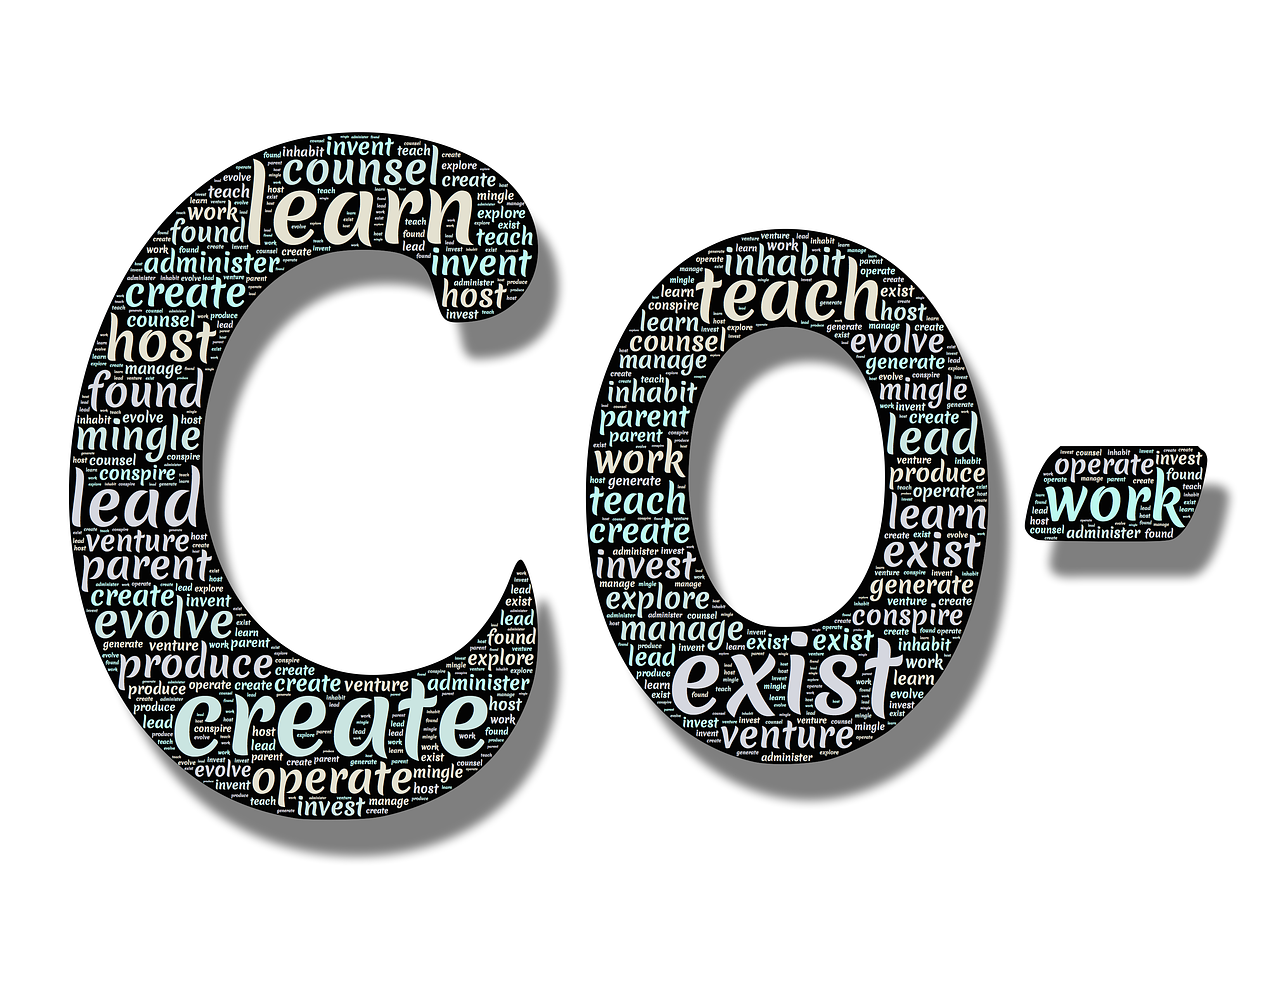 letters C and ) with embedded words in them such as learn, exist, teach, create, host, lead, etc.